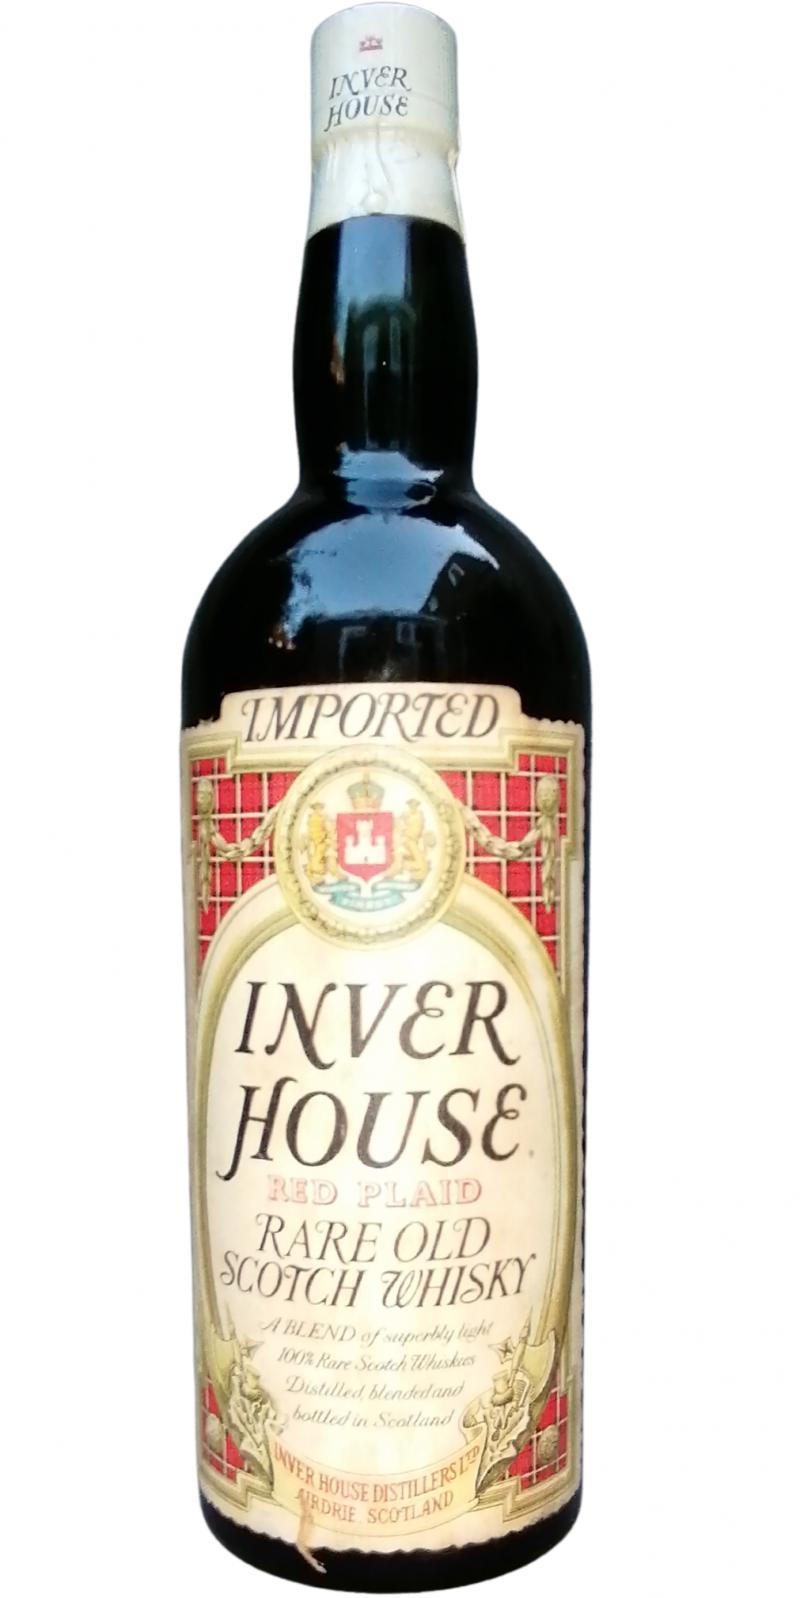 Inver House Red Plaid